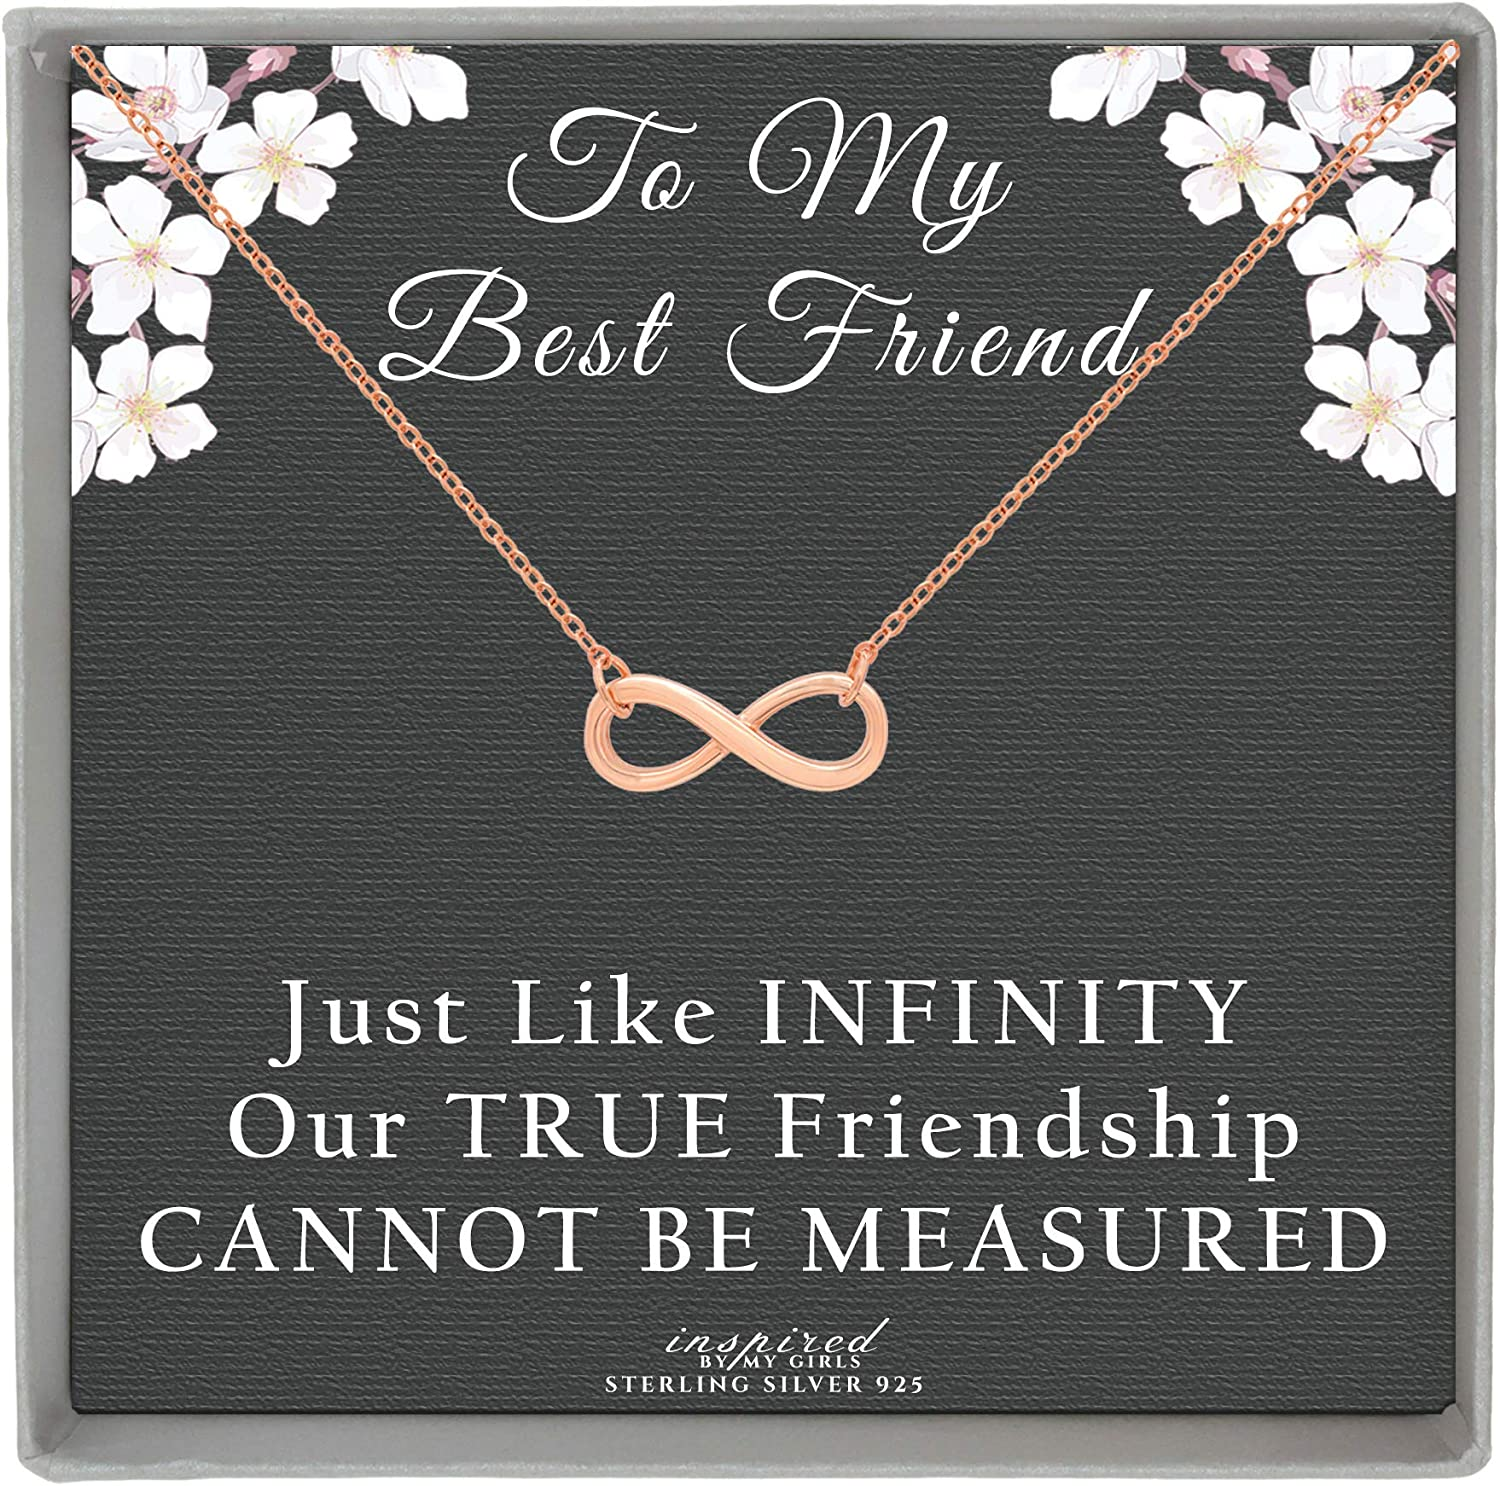 Friendship Engraving 925 Sterling Silver 925 Silver Neck Necklace with Infinity Sign and Plate Pendant coin Partner